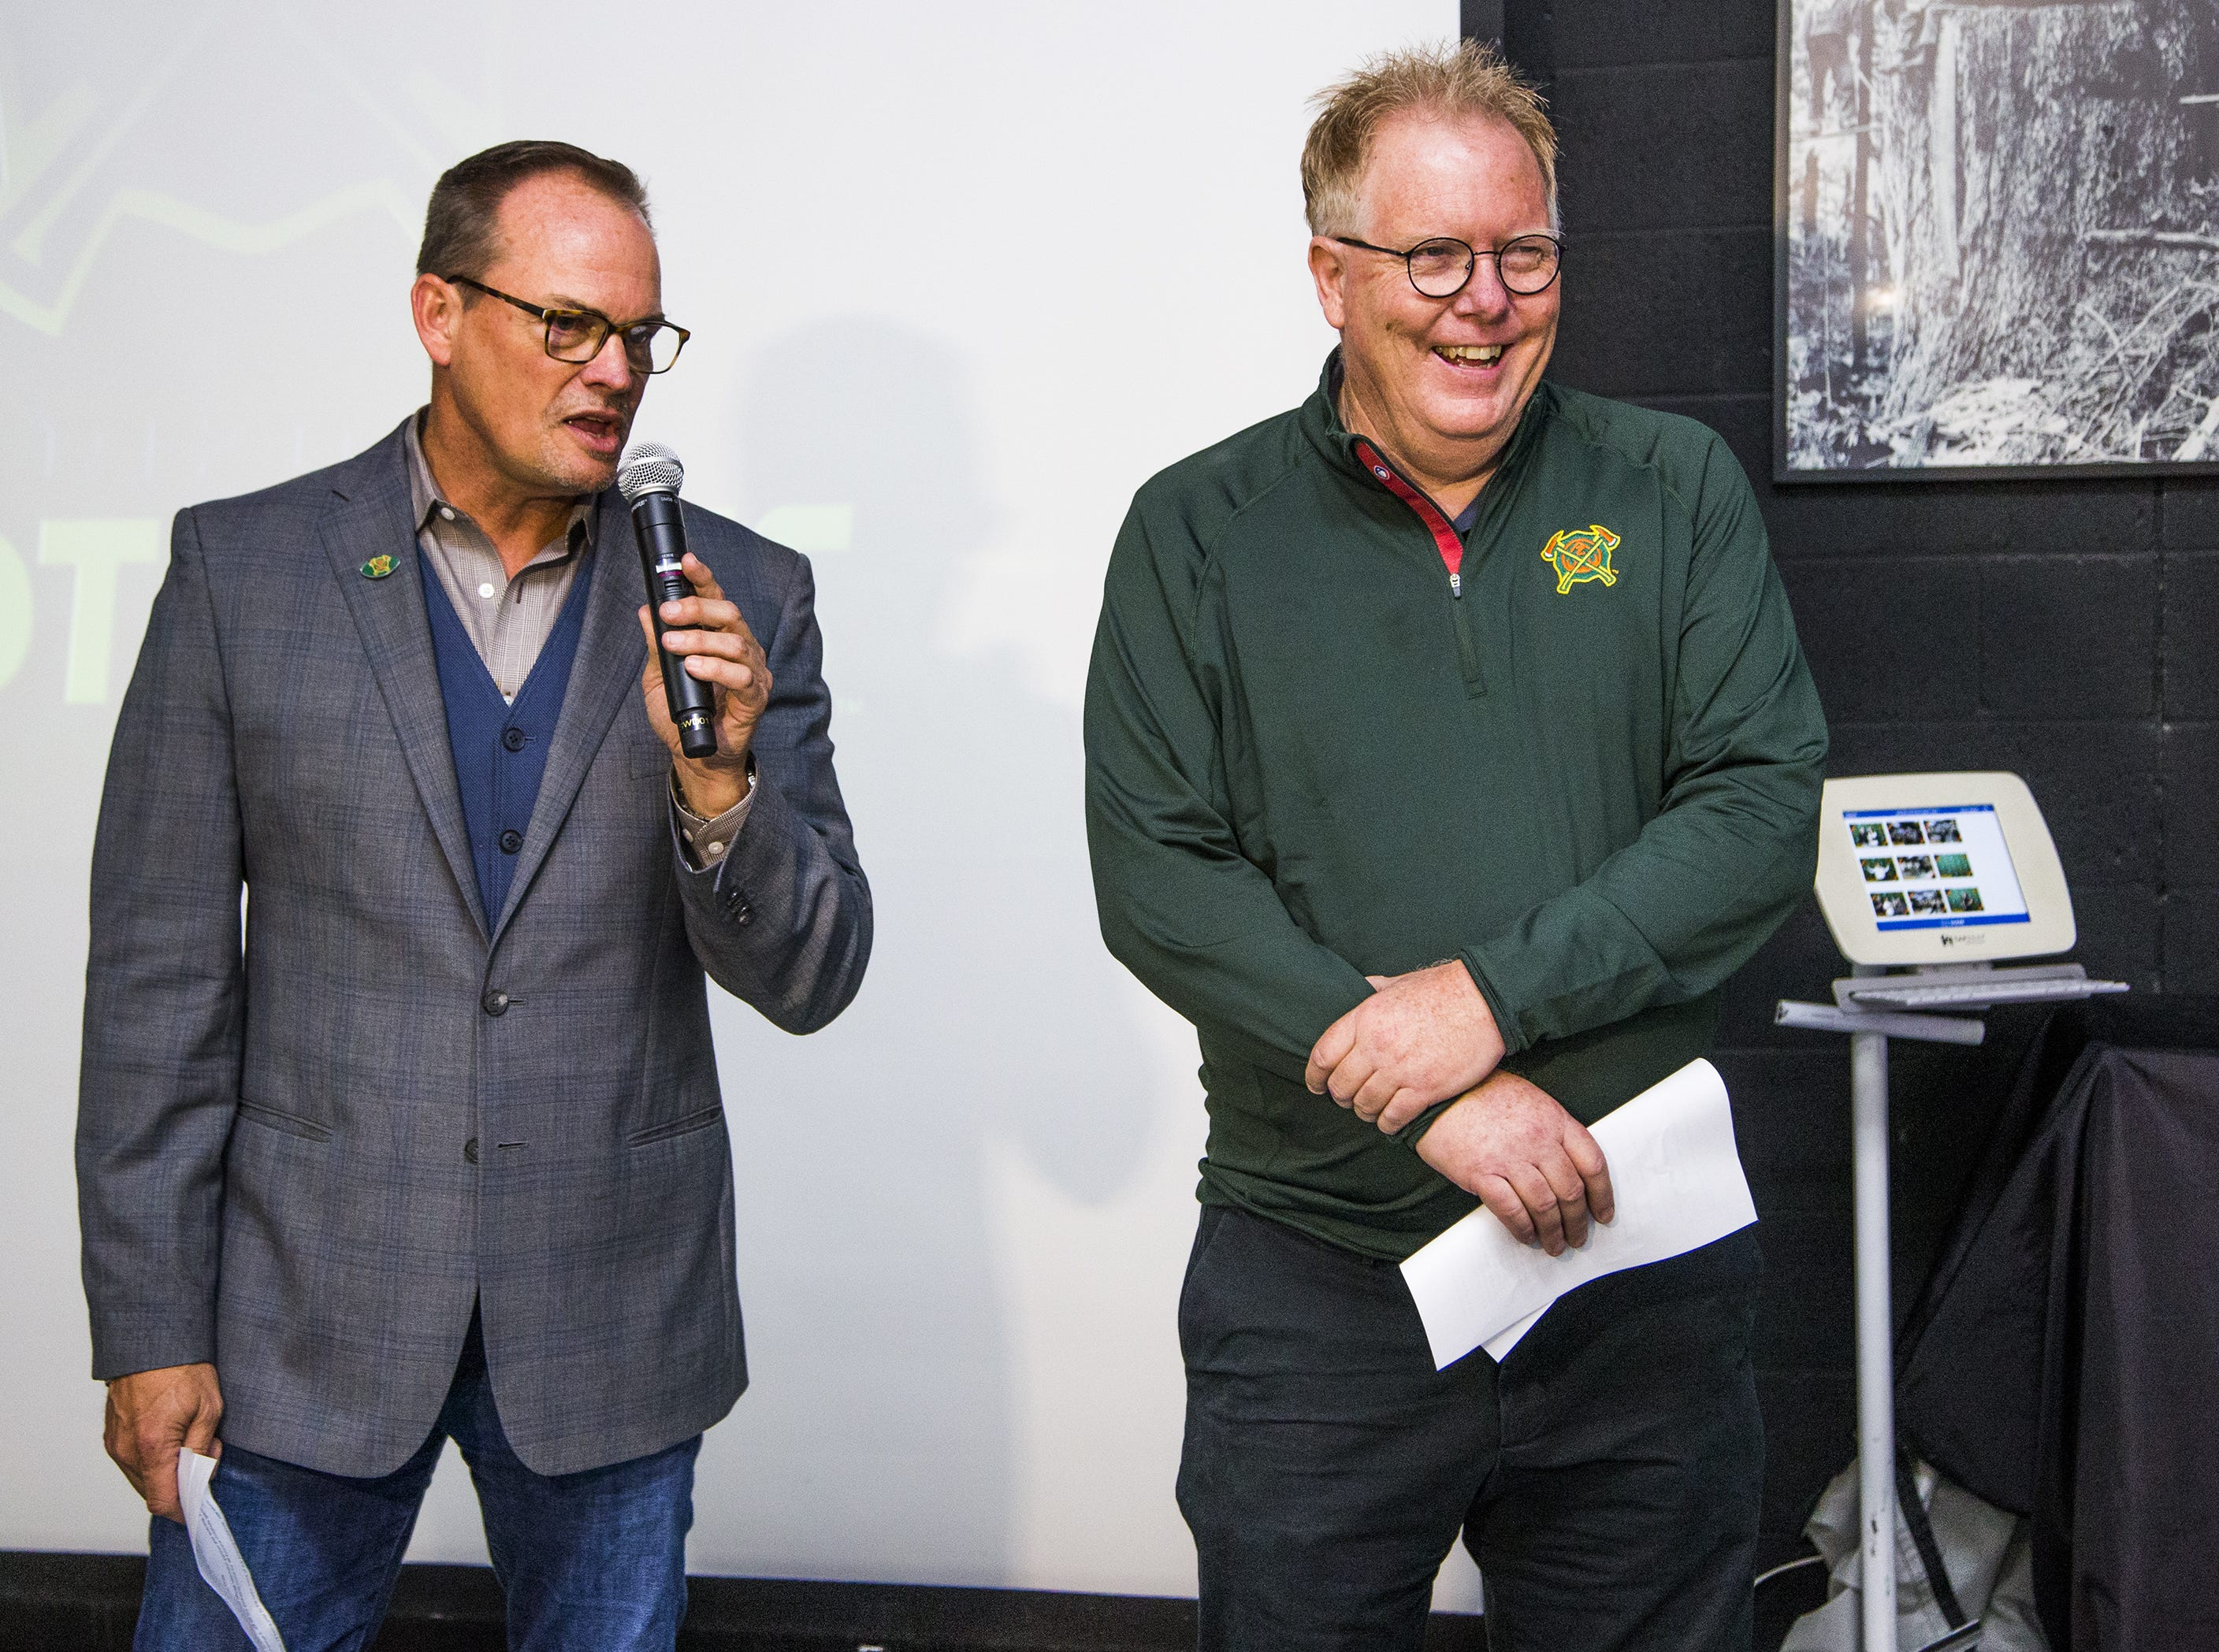 Arizona Hotshots president Scott Brubaker, left, introduces Jeff Munn as the voice of the new professional football team at an event at Lumberjaxes in Tempe, Tuesday, November 27, 2018.